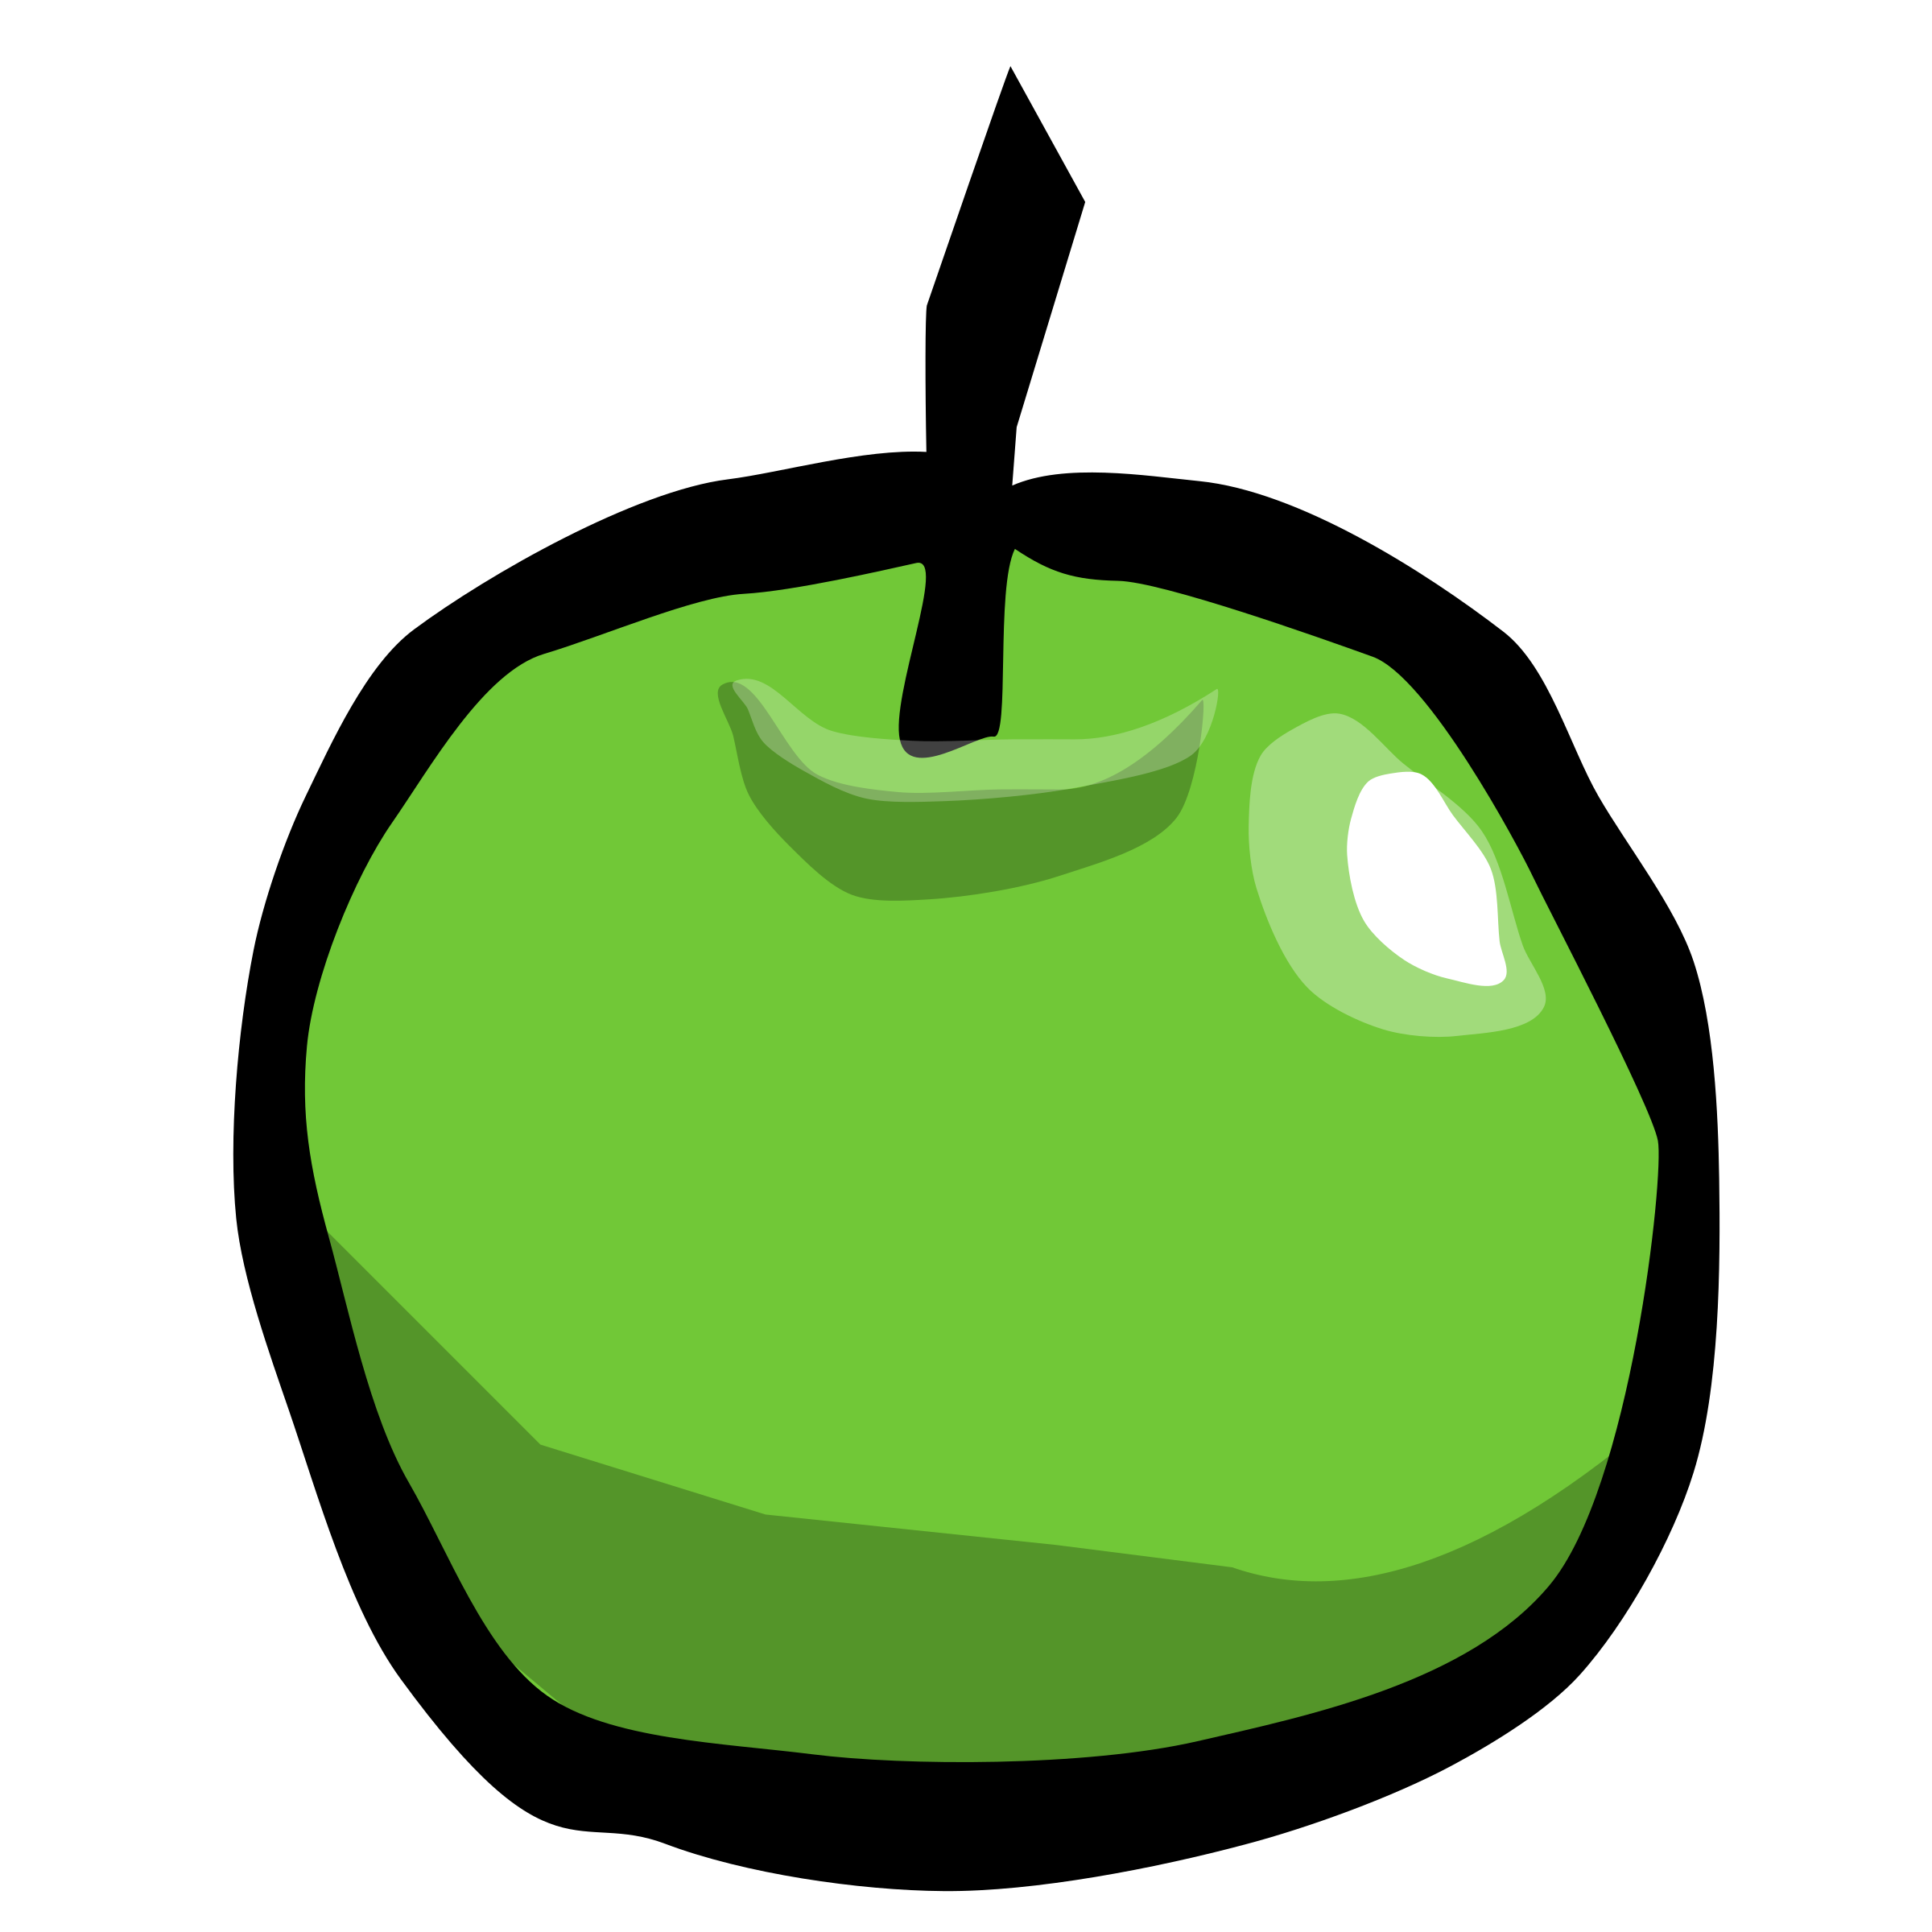 apple by matou